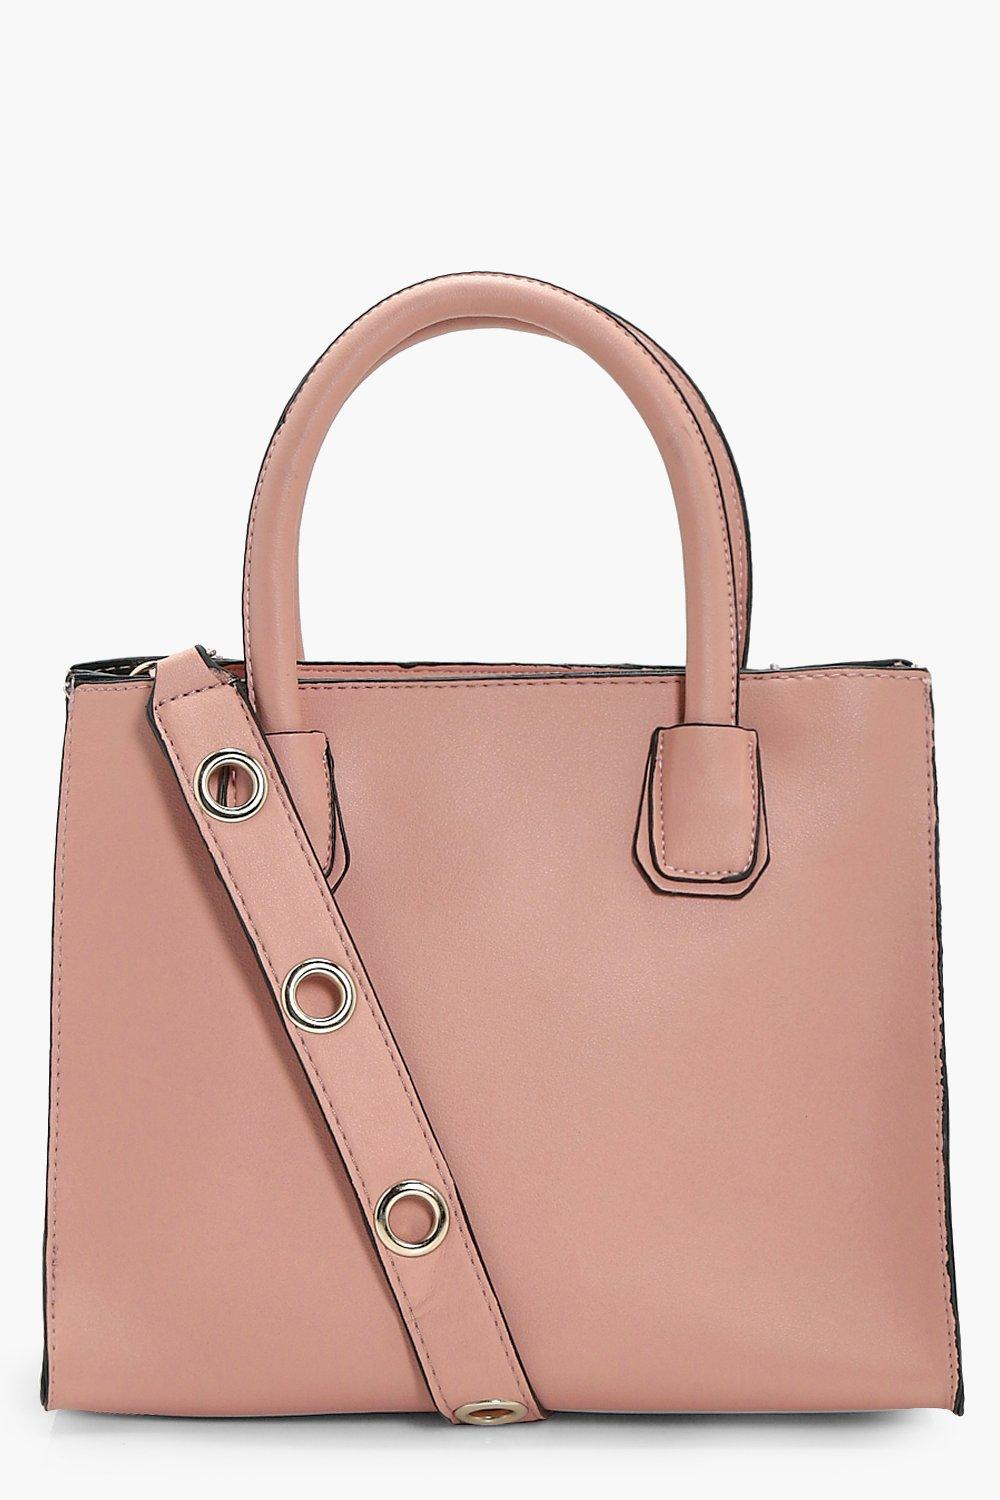 Structured Eyelet Strap Mini Cross Body - pink - L